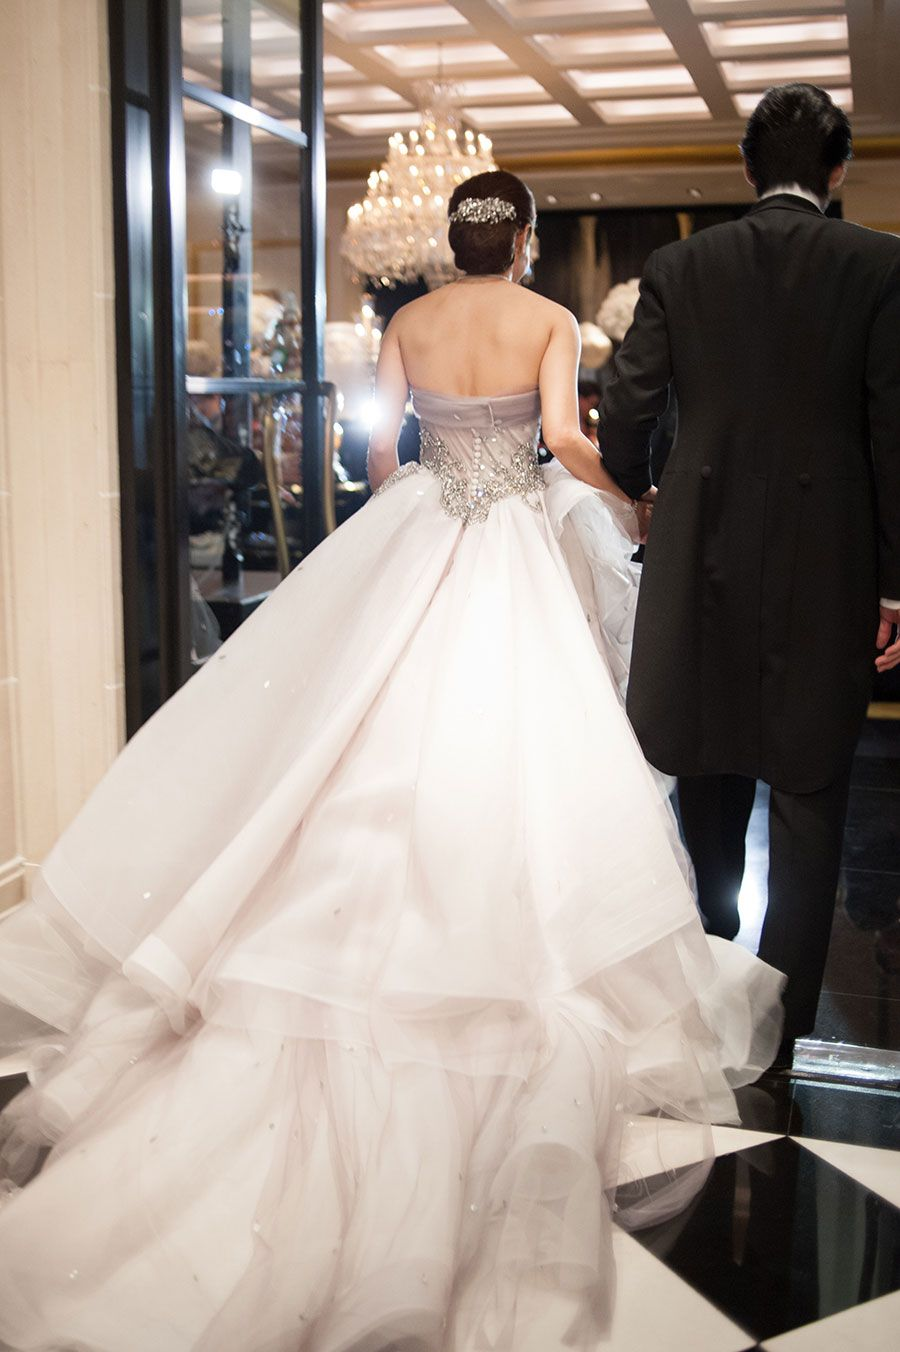 Wedding ball gown with embellished bodice by tex saverio jeffrey